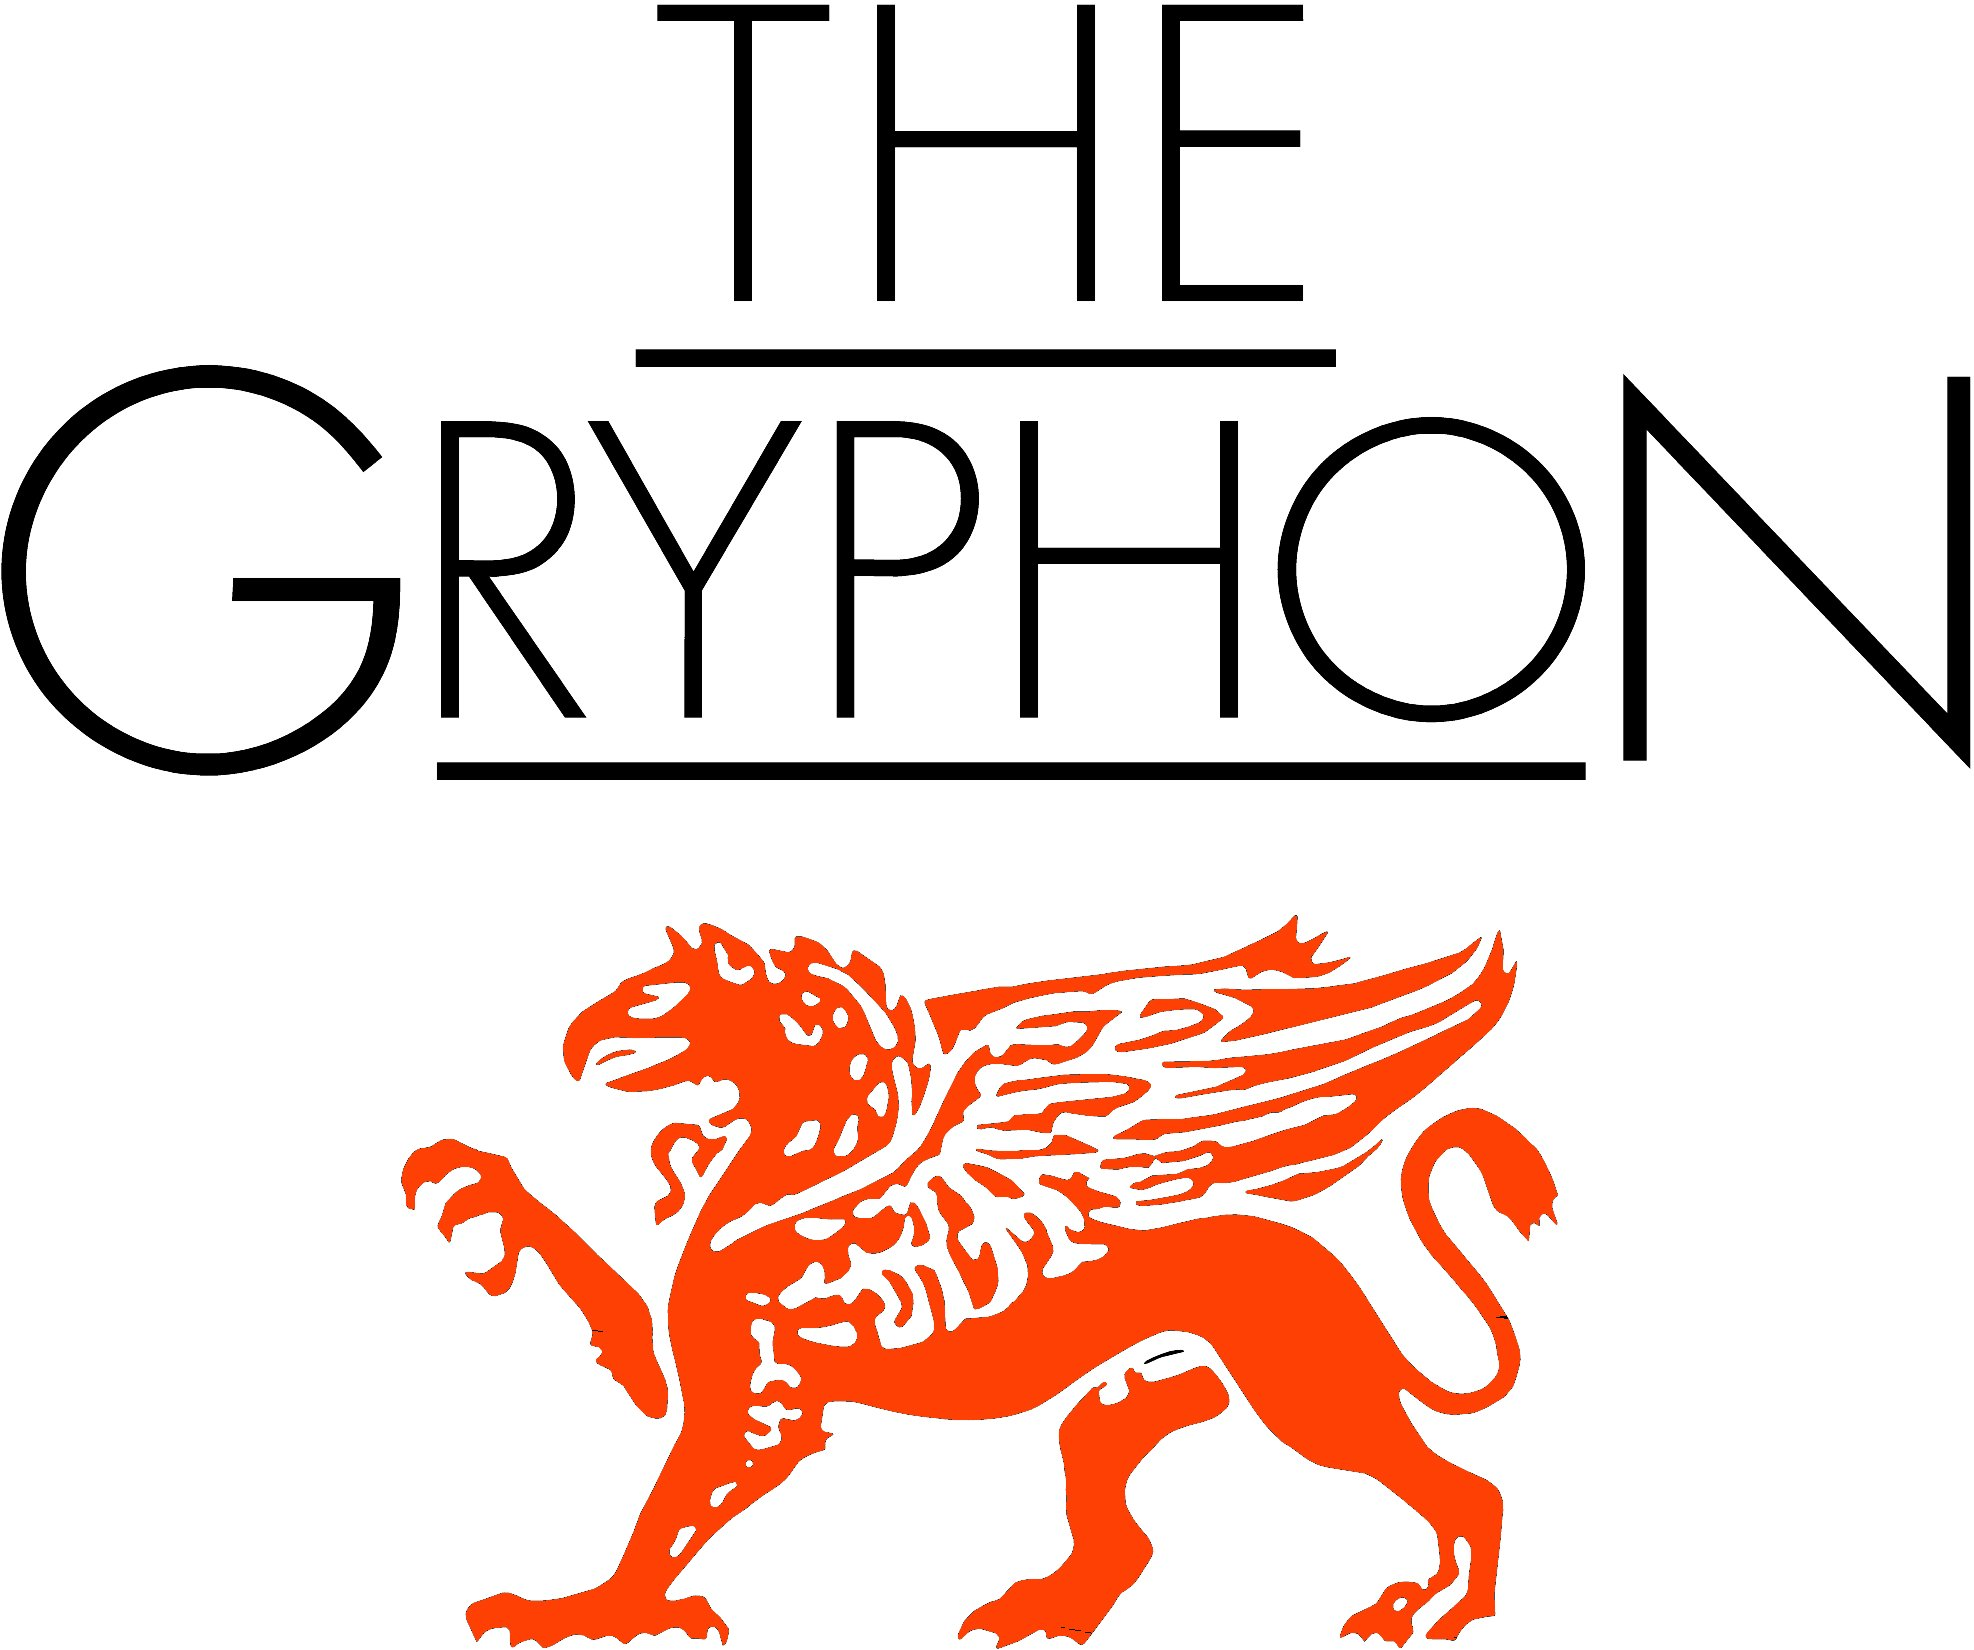 gryphon imagery graphics